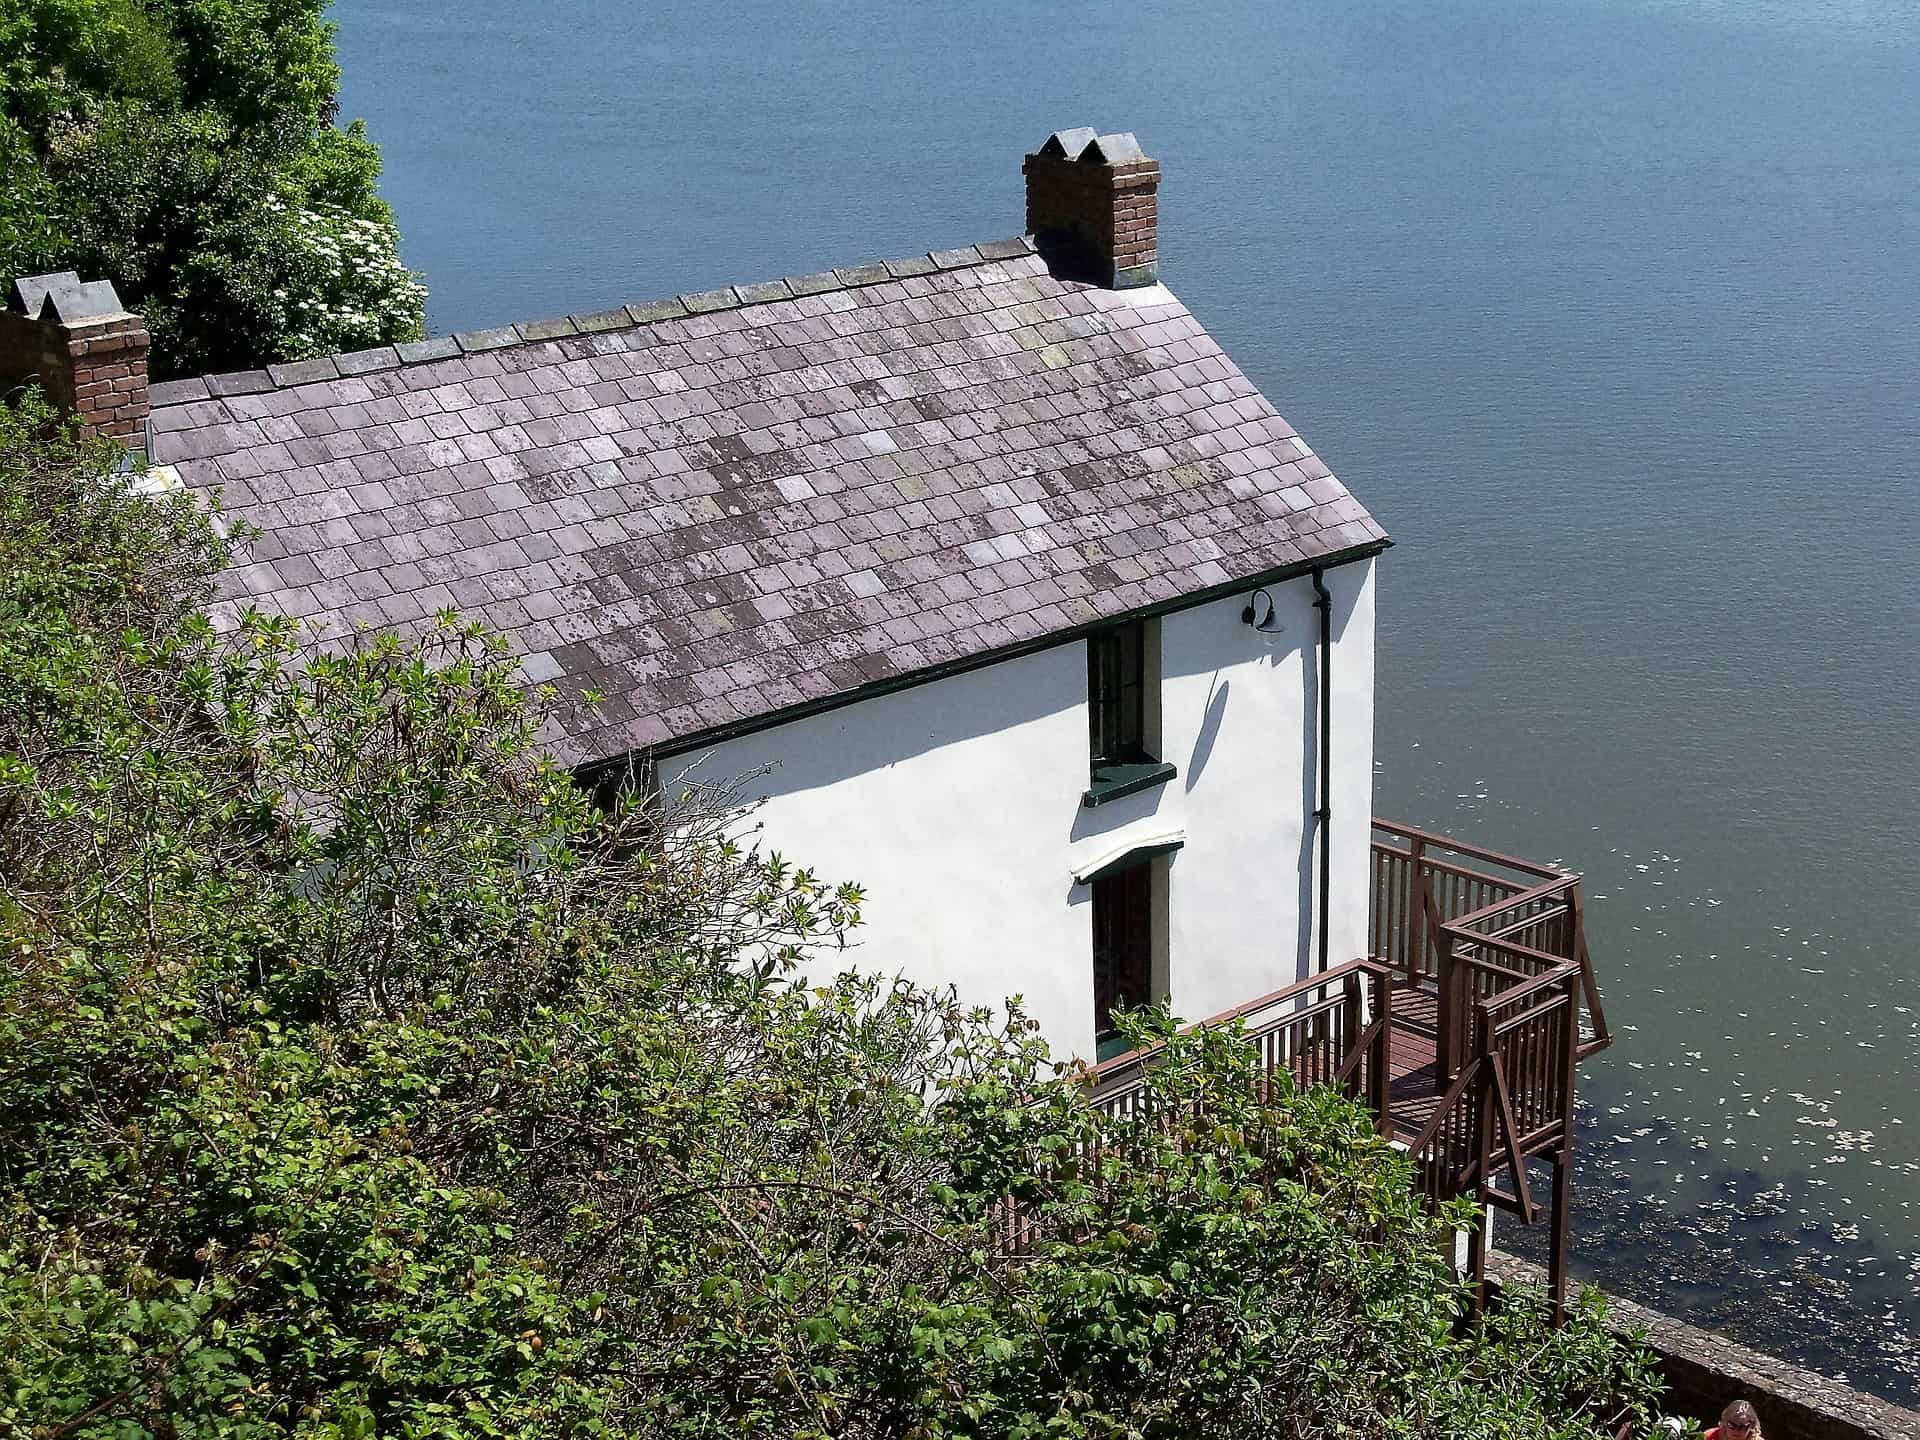 Wales - Carmarthenshire - Laugharne - Dylan Thomas House